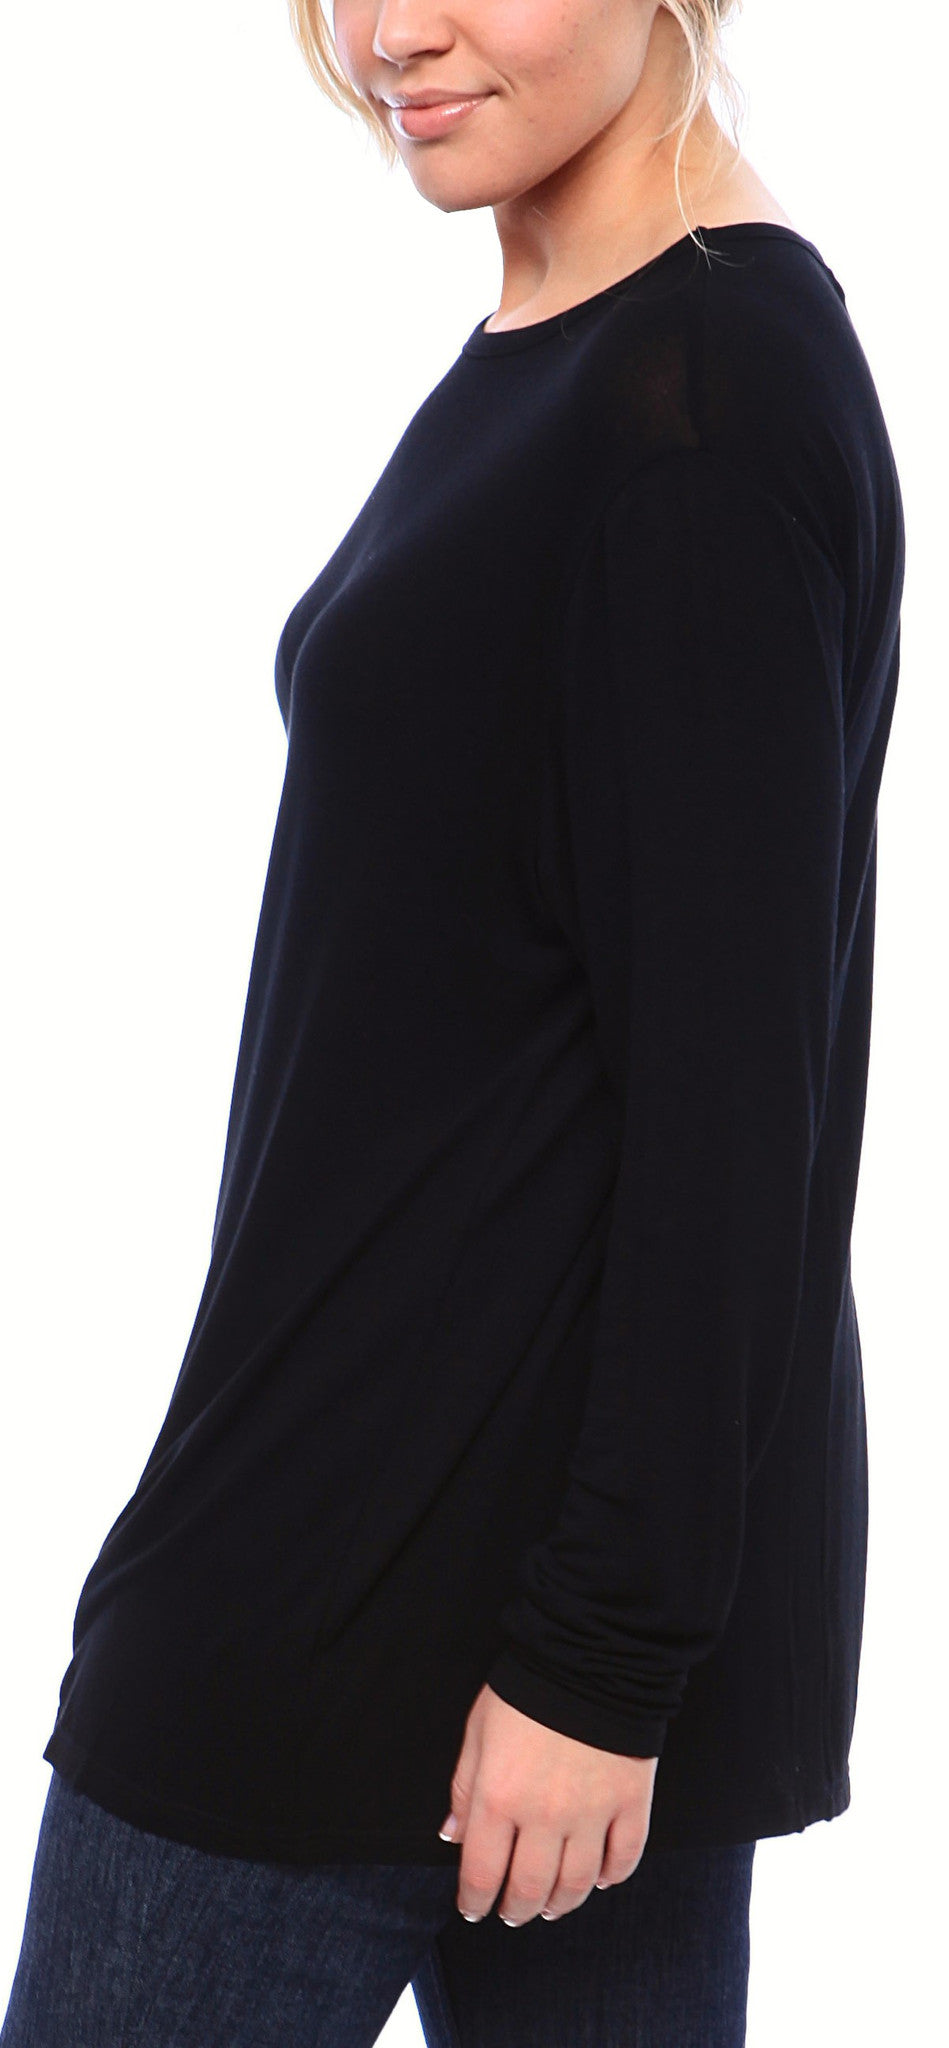 Expertly Cut Crew Neck Tee with Long Sleeves in Black